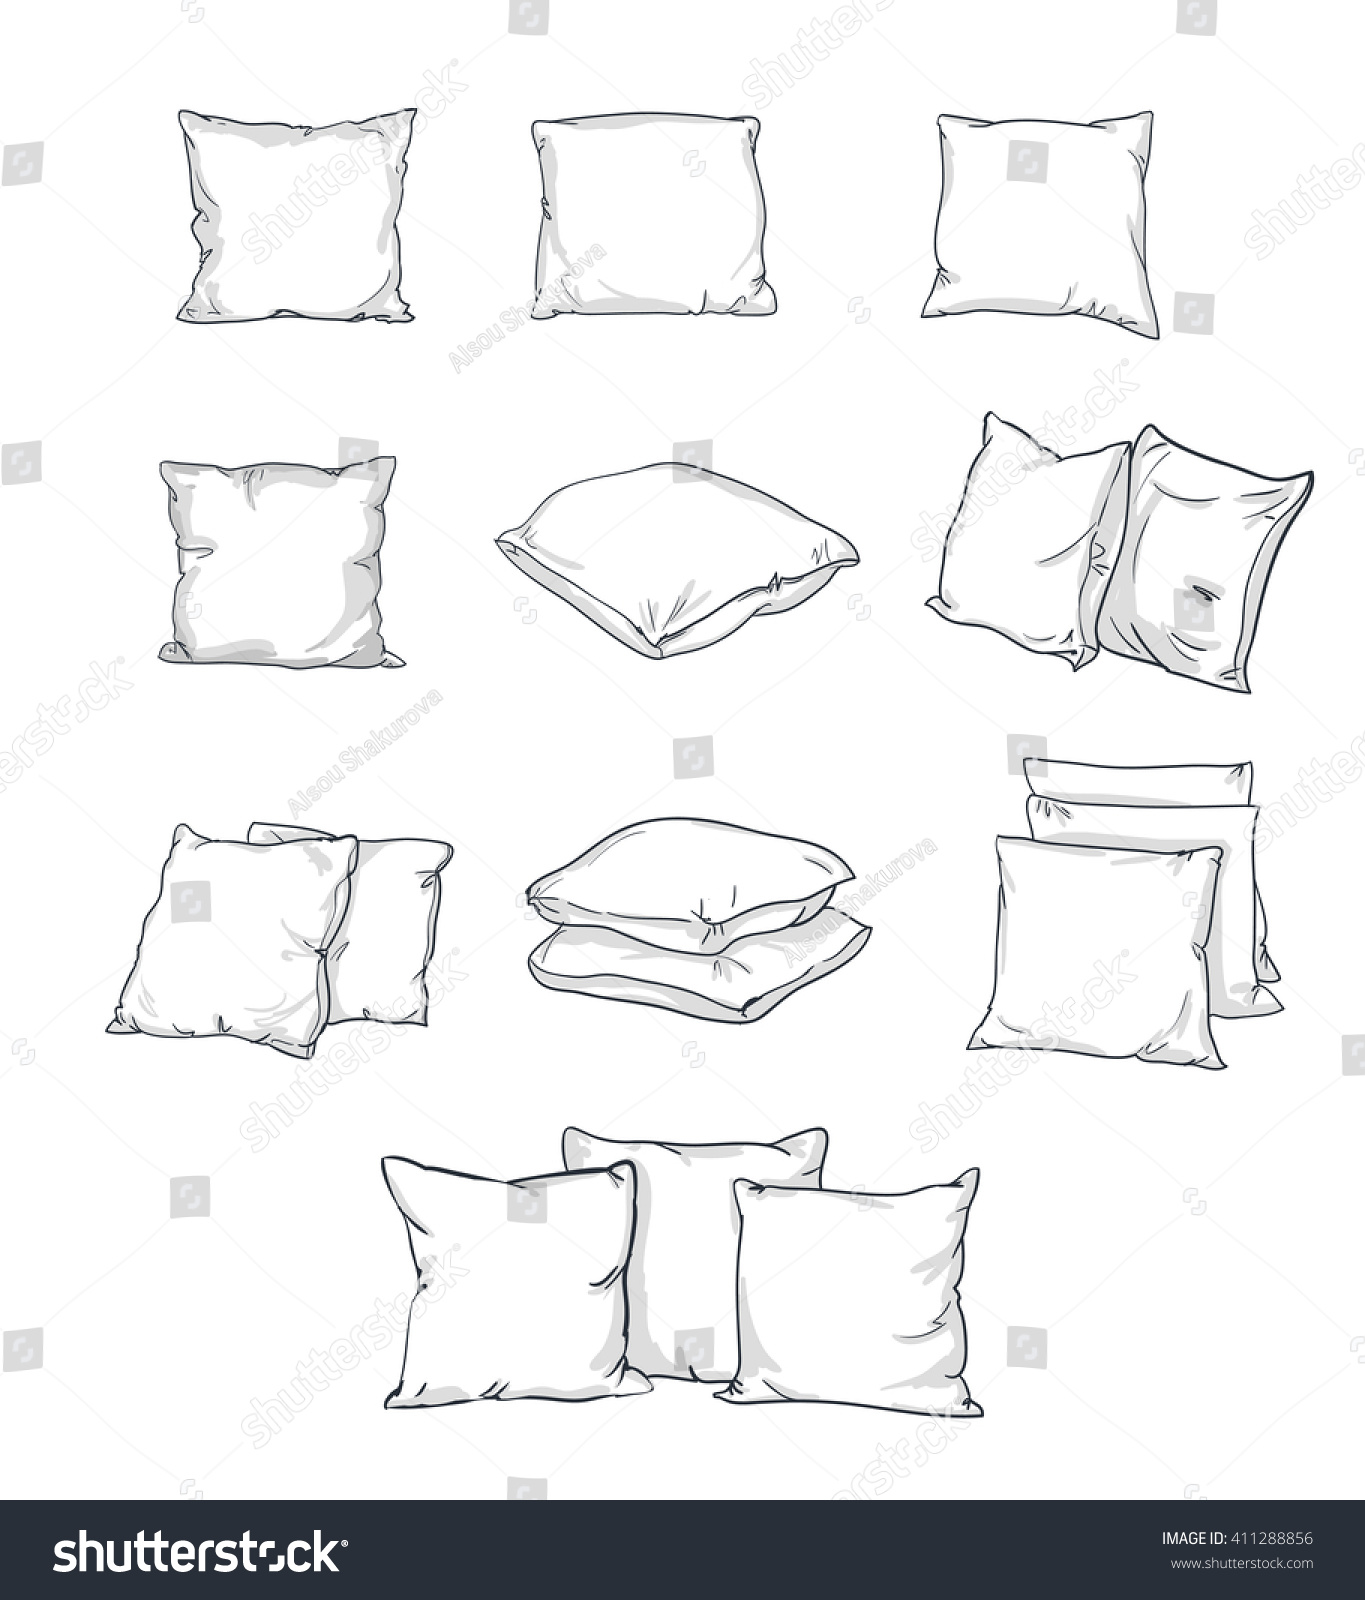 Sketch Vector Illustration Pillow Art Pillow Stock Vector ...